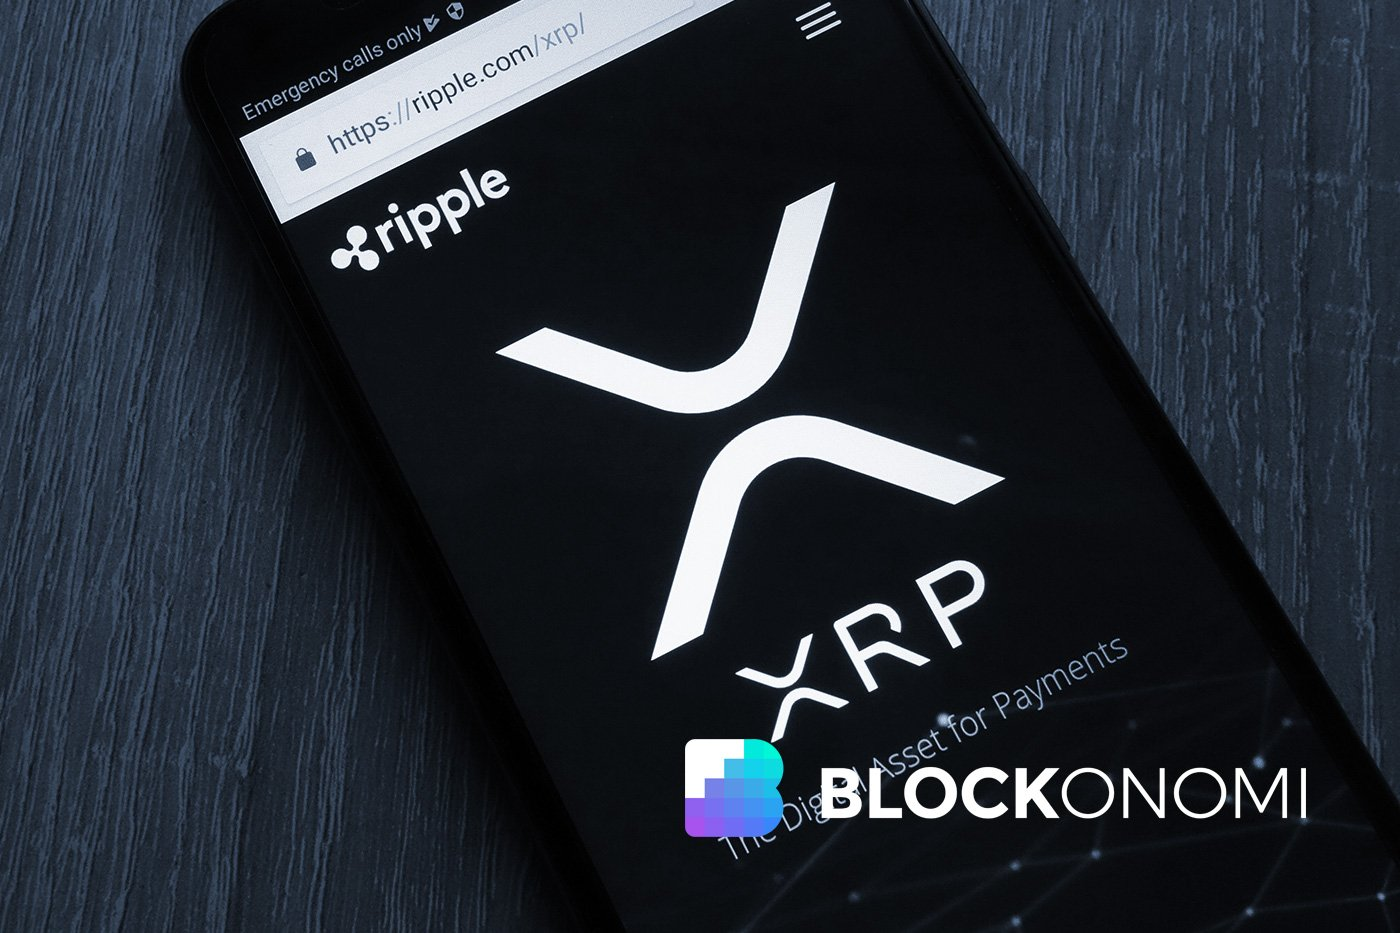 What to do with xrp